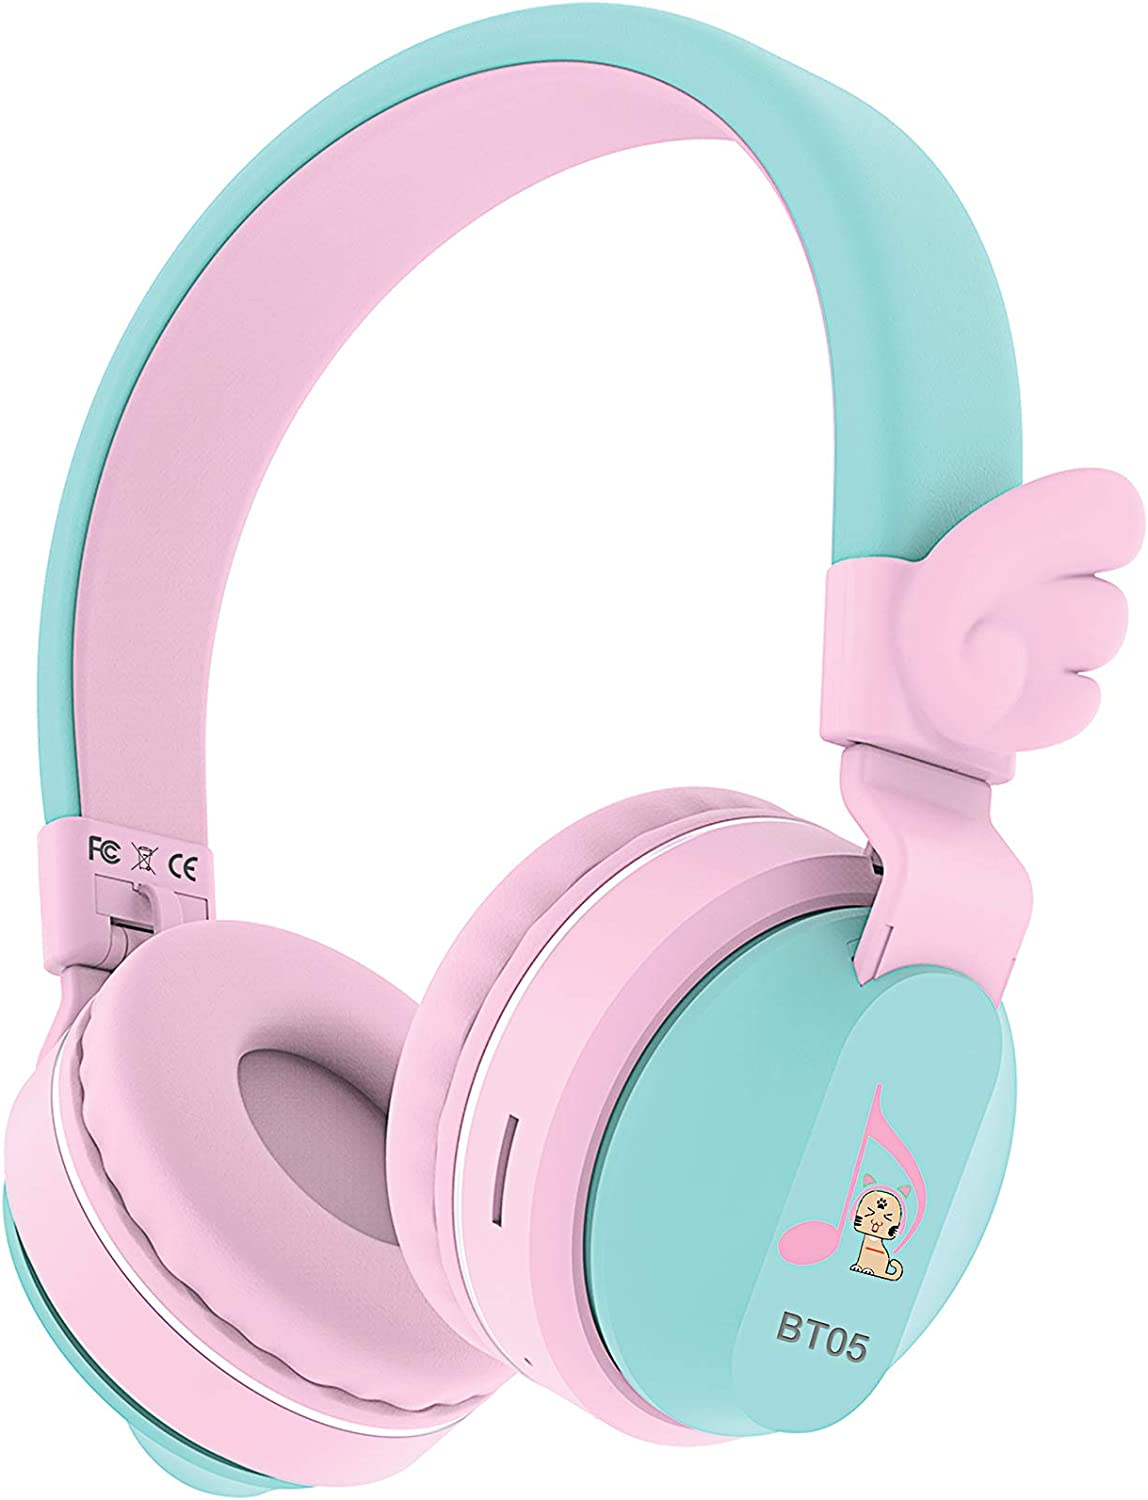 look this headphones this is one of the best kids headphones for the school this is best for the toddlers nd also this is used for the lot of works for the toddlers